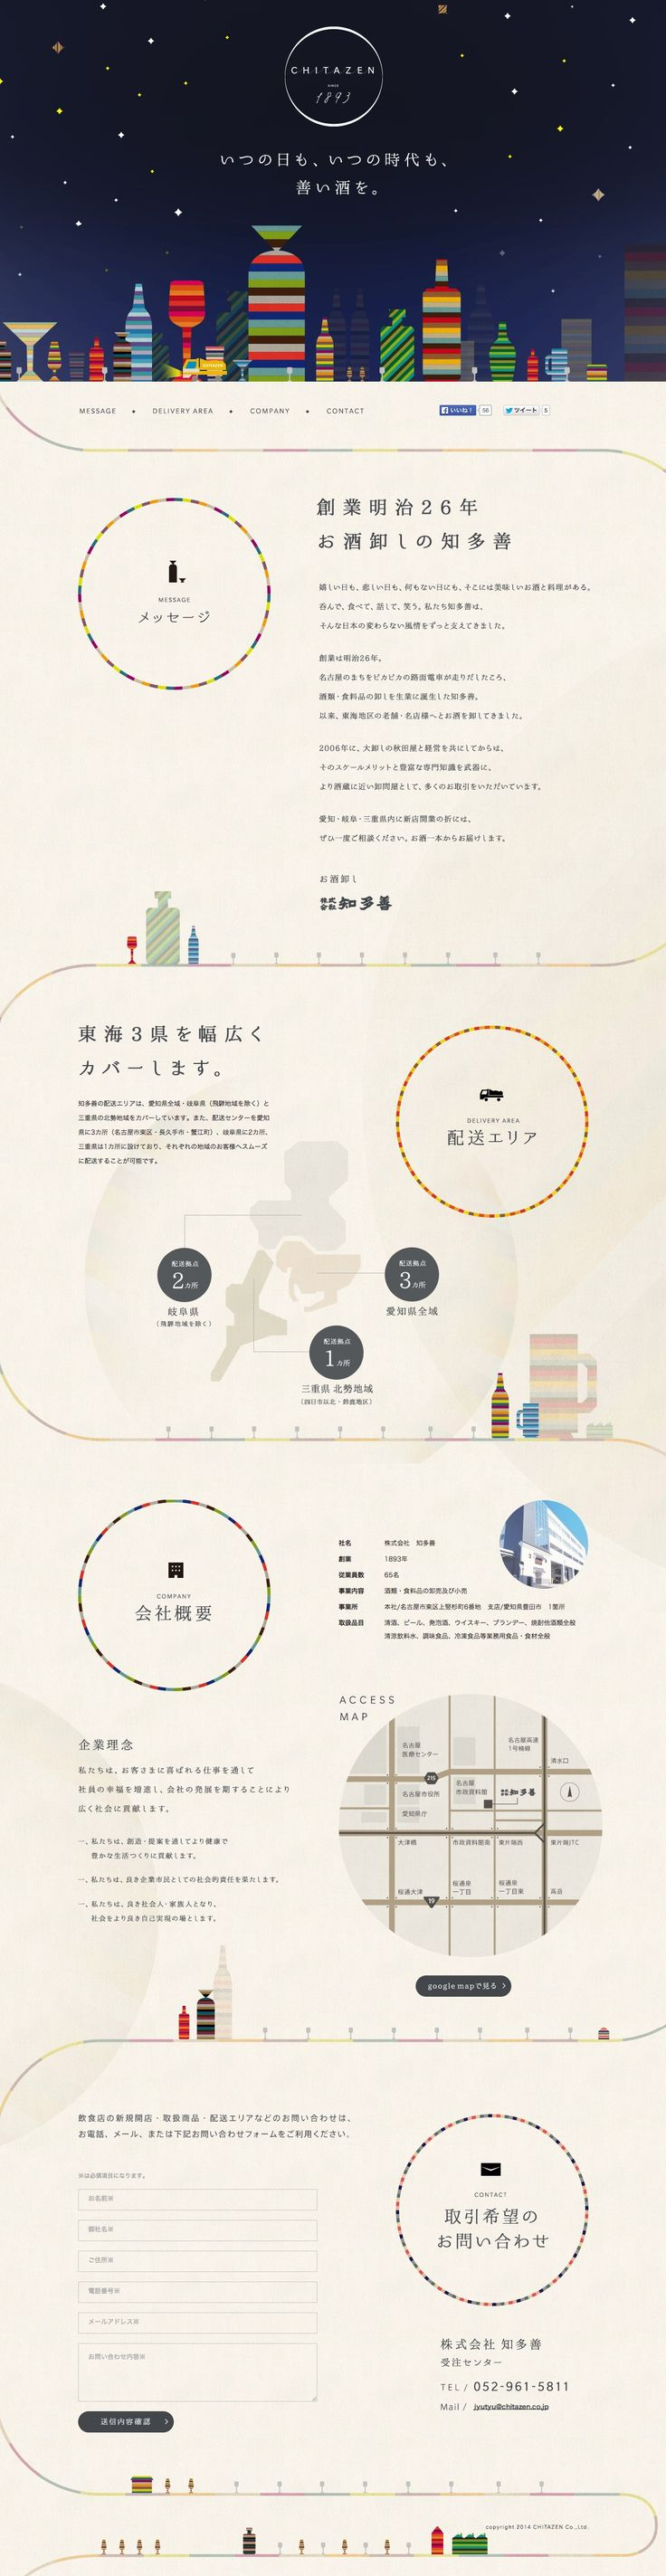 Unique Web Design, Chitazen via @tonibowl #WebDesign #Design 素材を使わないデザイン イラスト…